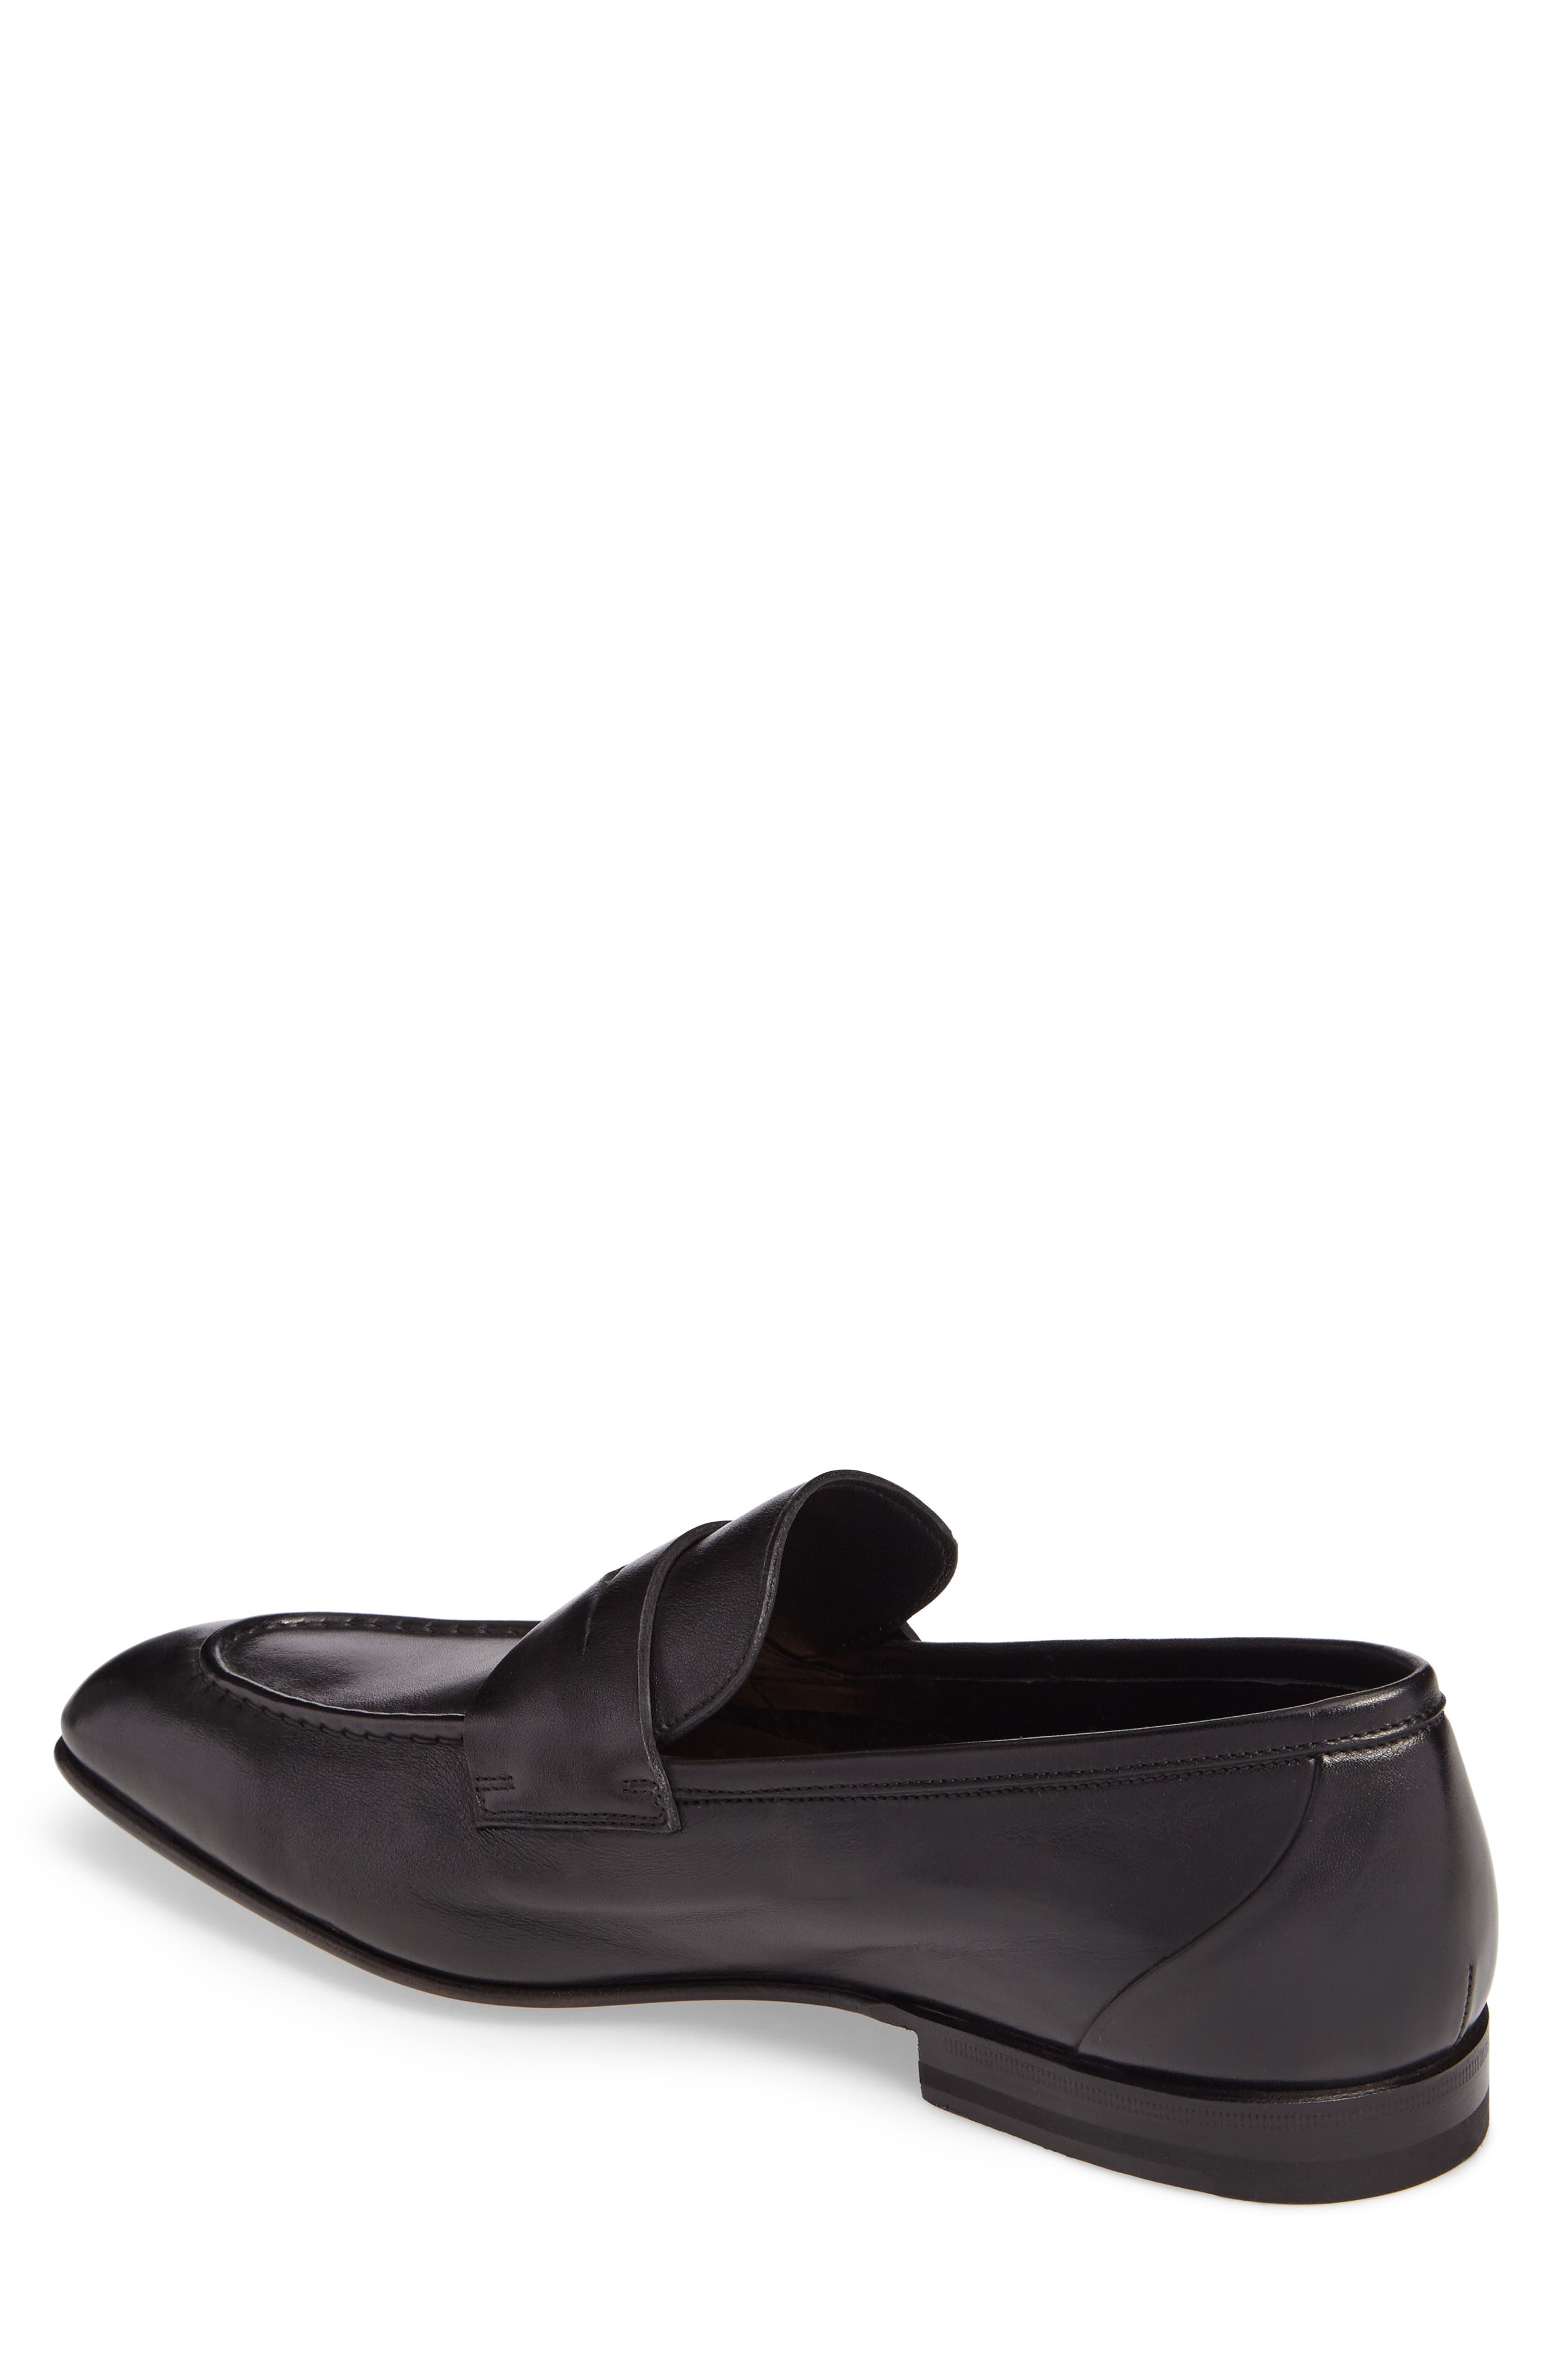 Gannon Penny Loafer,                             Alternate thumbnail 2, color,                             BLACK